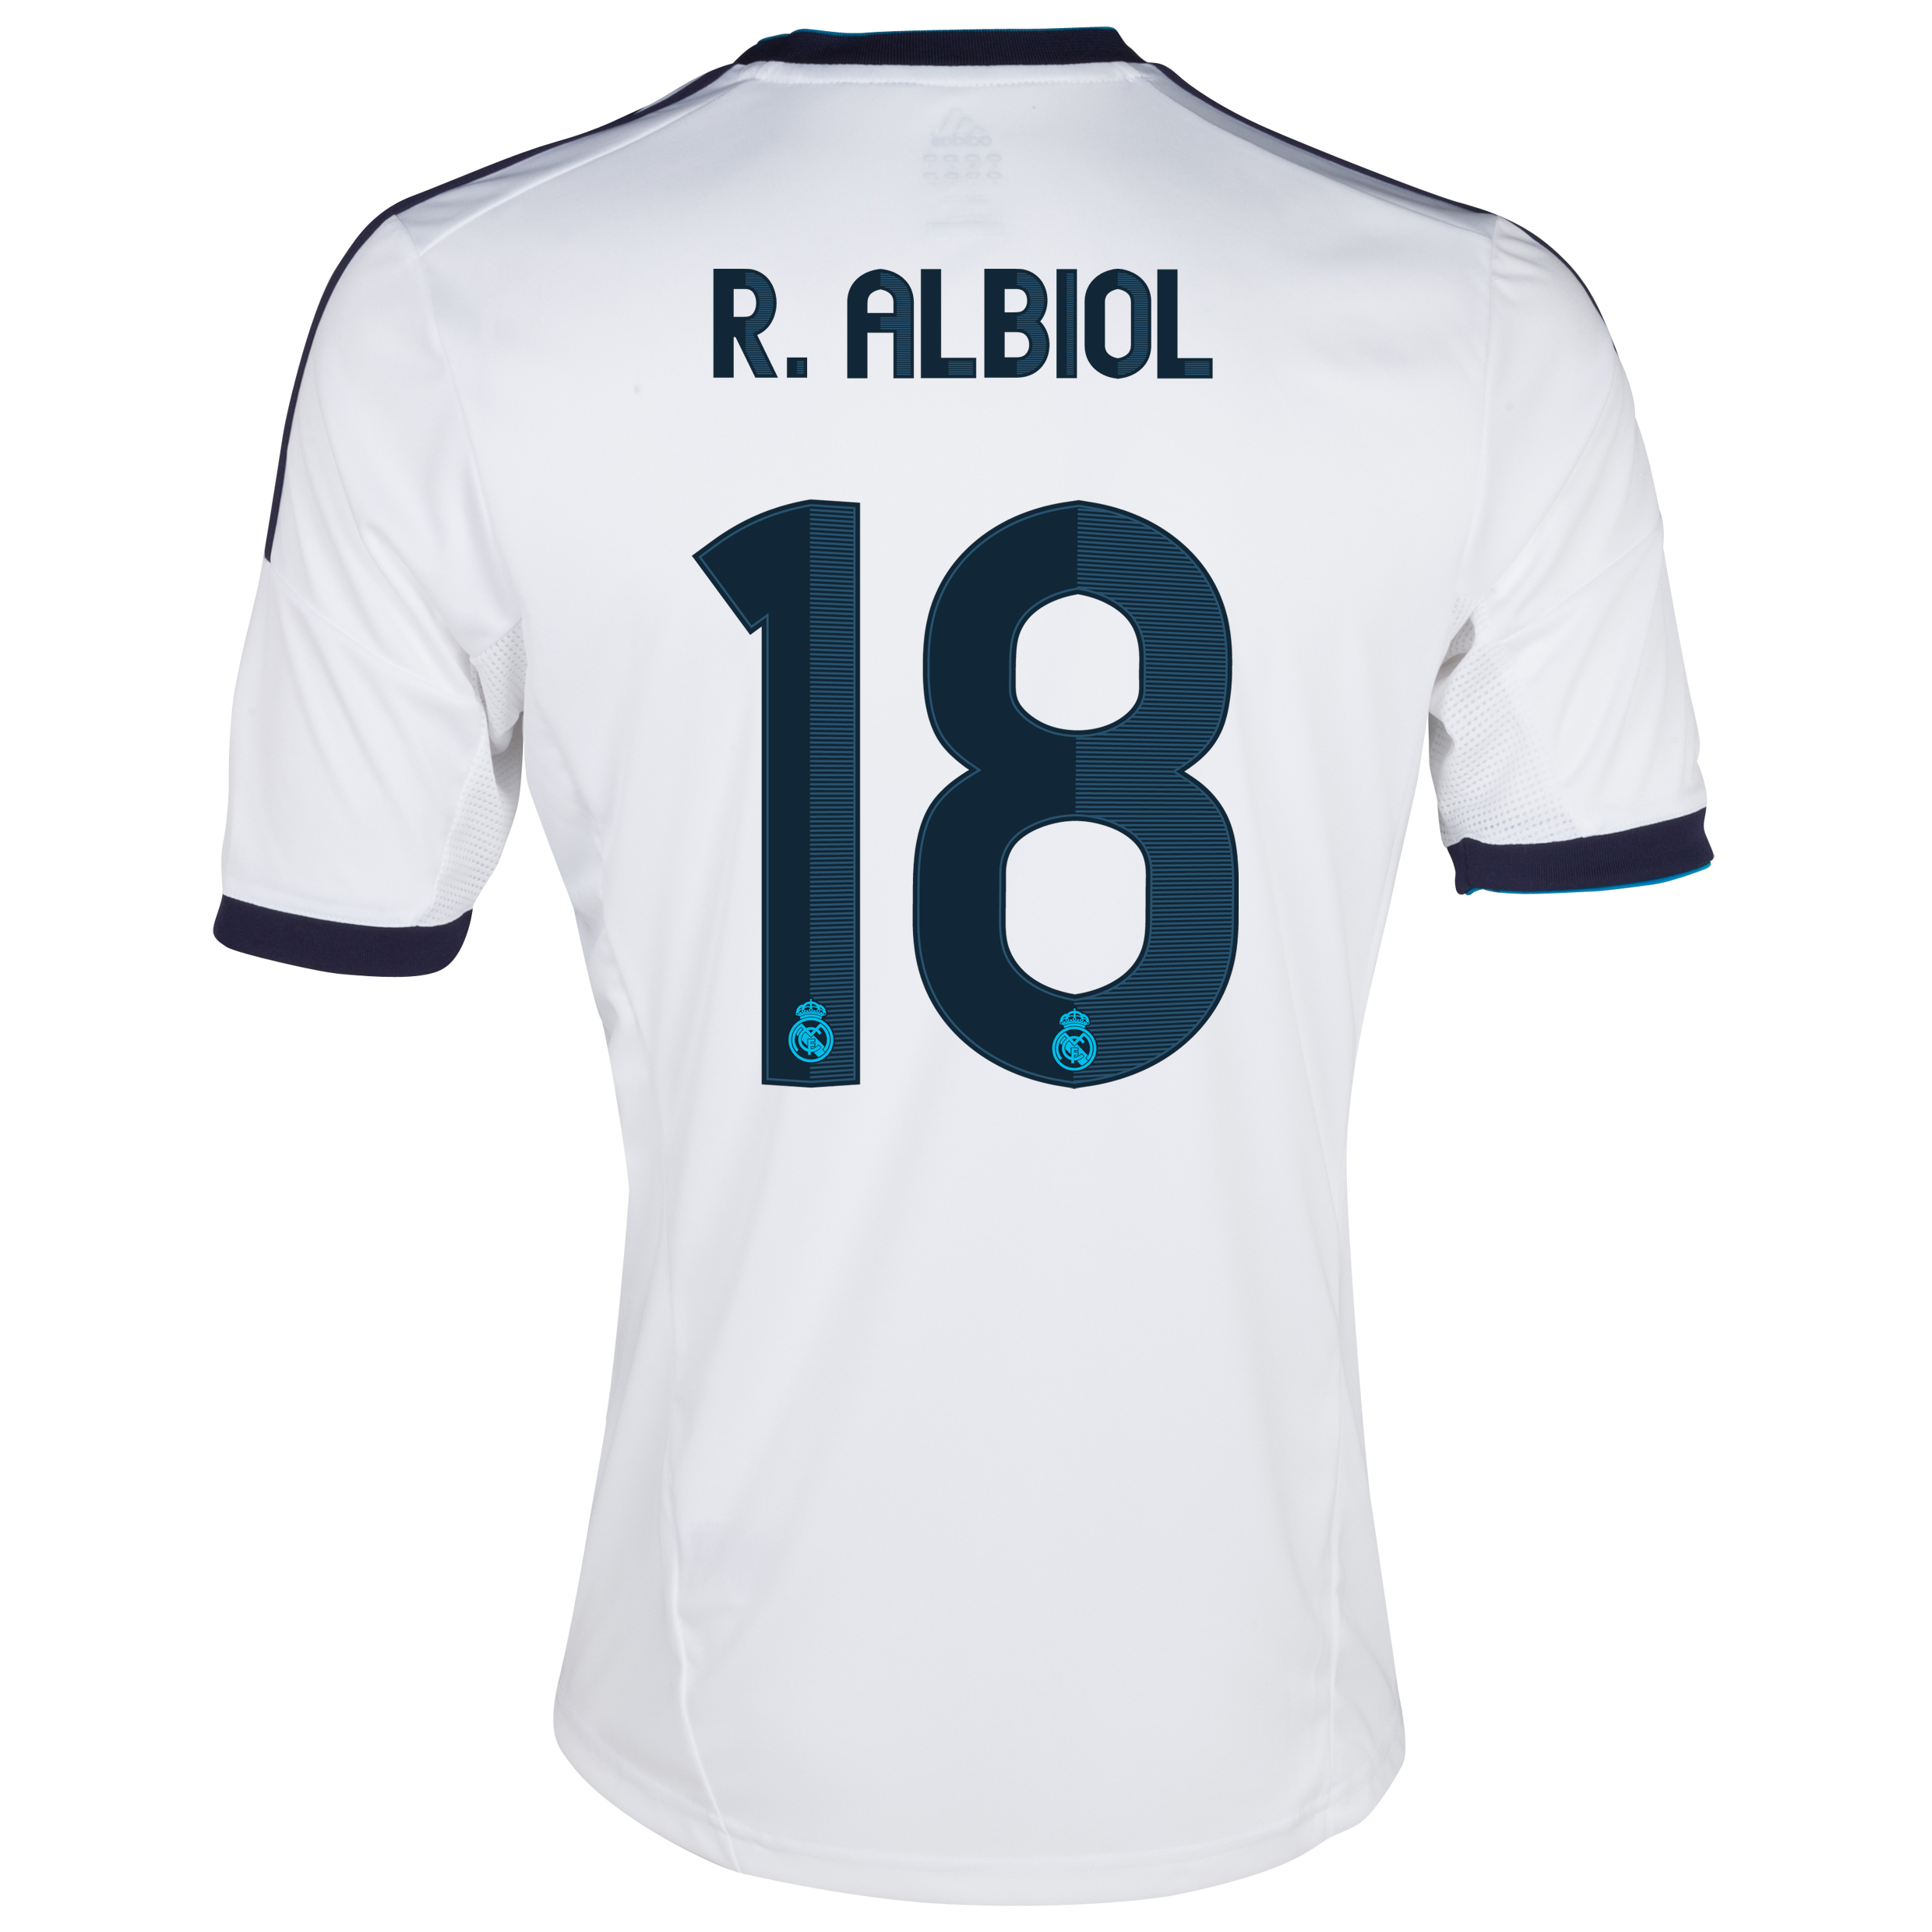 Camiseta 1 equipacin del Real Madrid 2012/13 Nios con Albiol 18